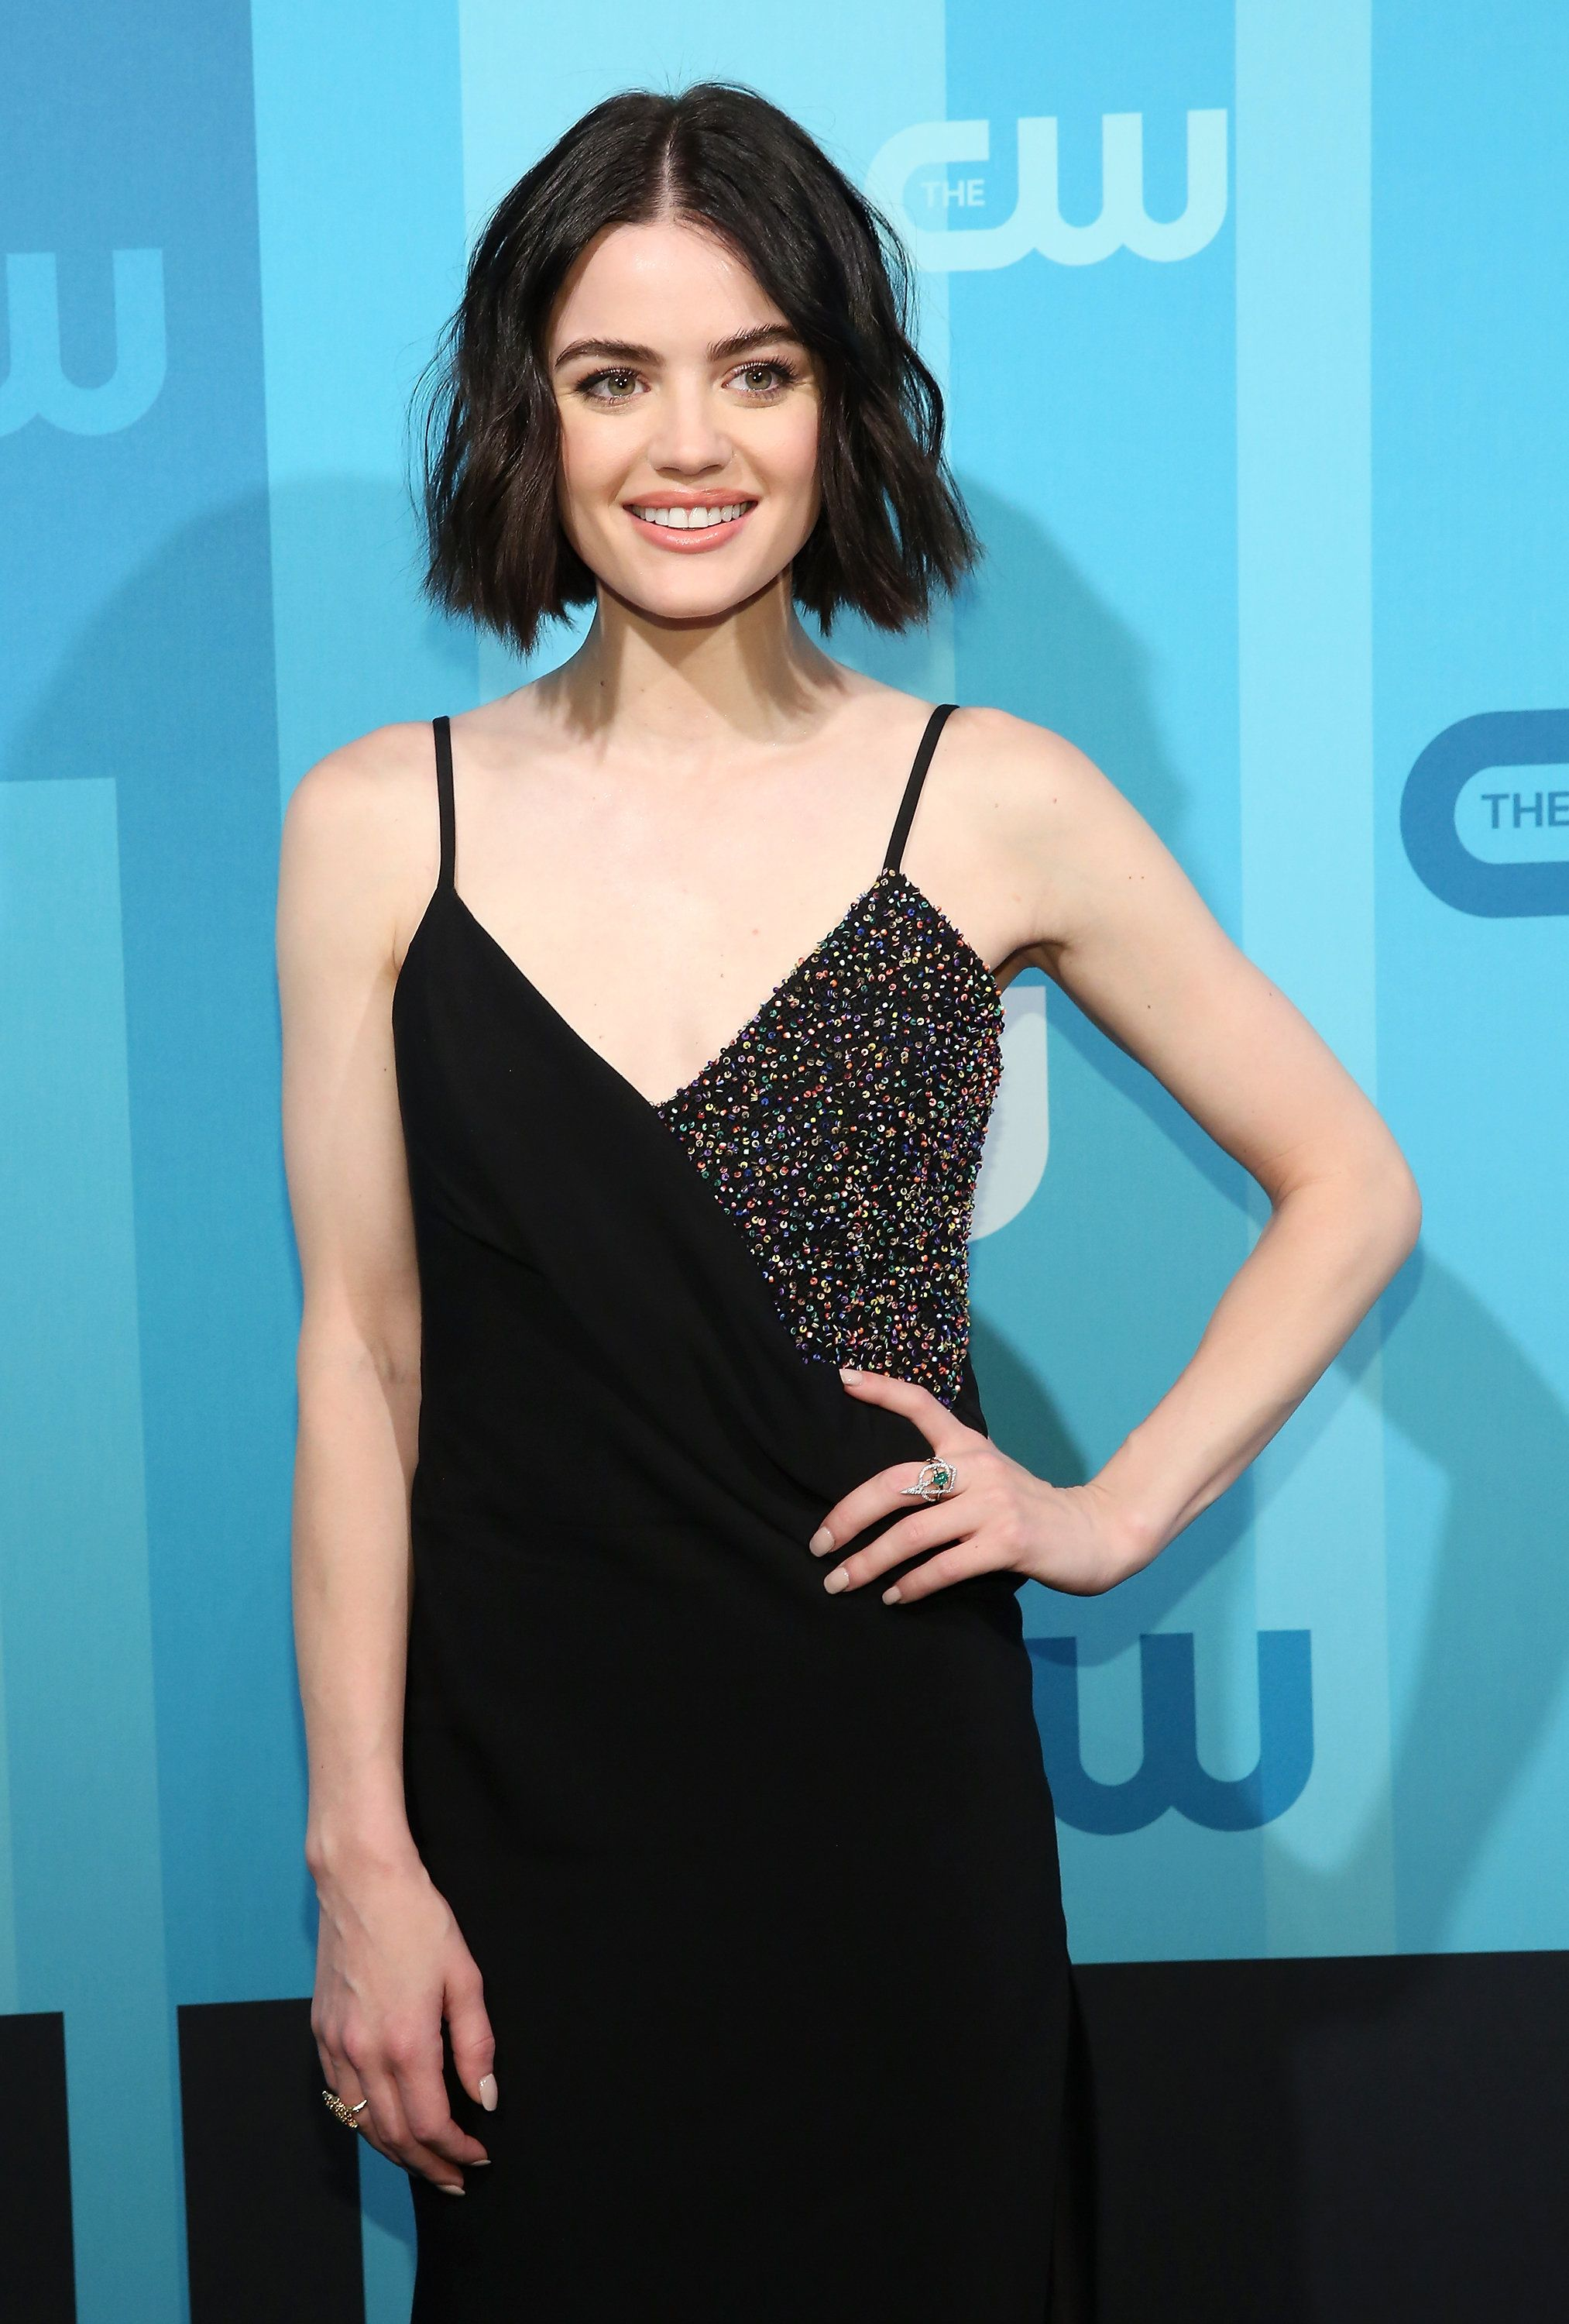 NEW YORK, NY - MAY 18:  Actress Lucy Hale attends the 2017 CW Upfront on May 18, 2017 in New York City.  (Photo by Monica Schipper/WireImage)